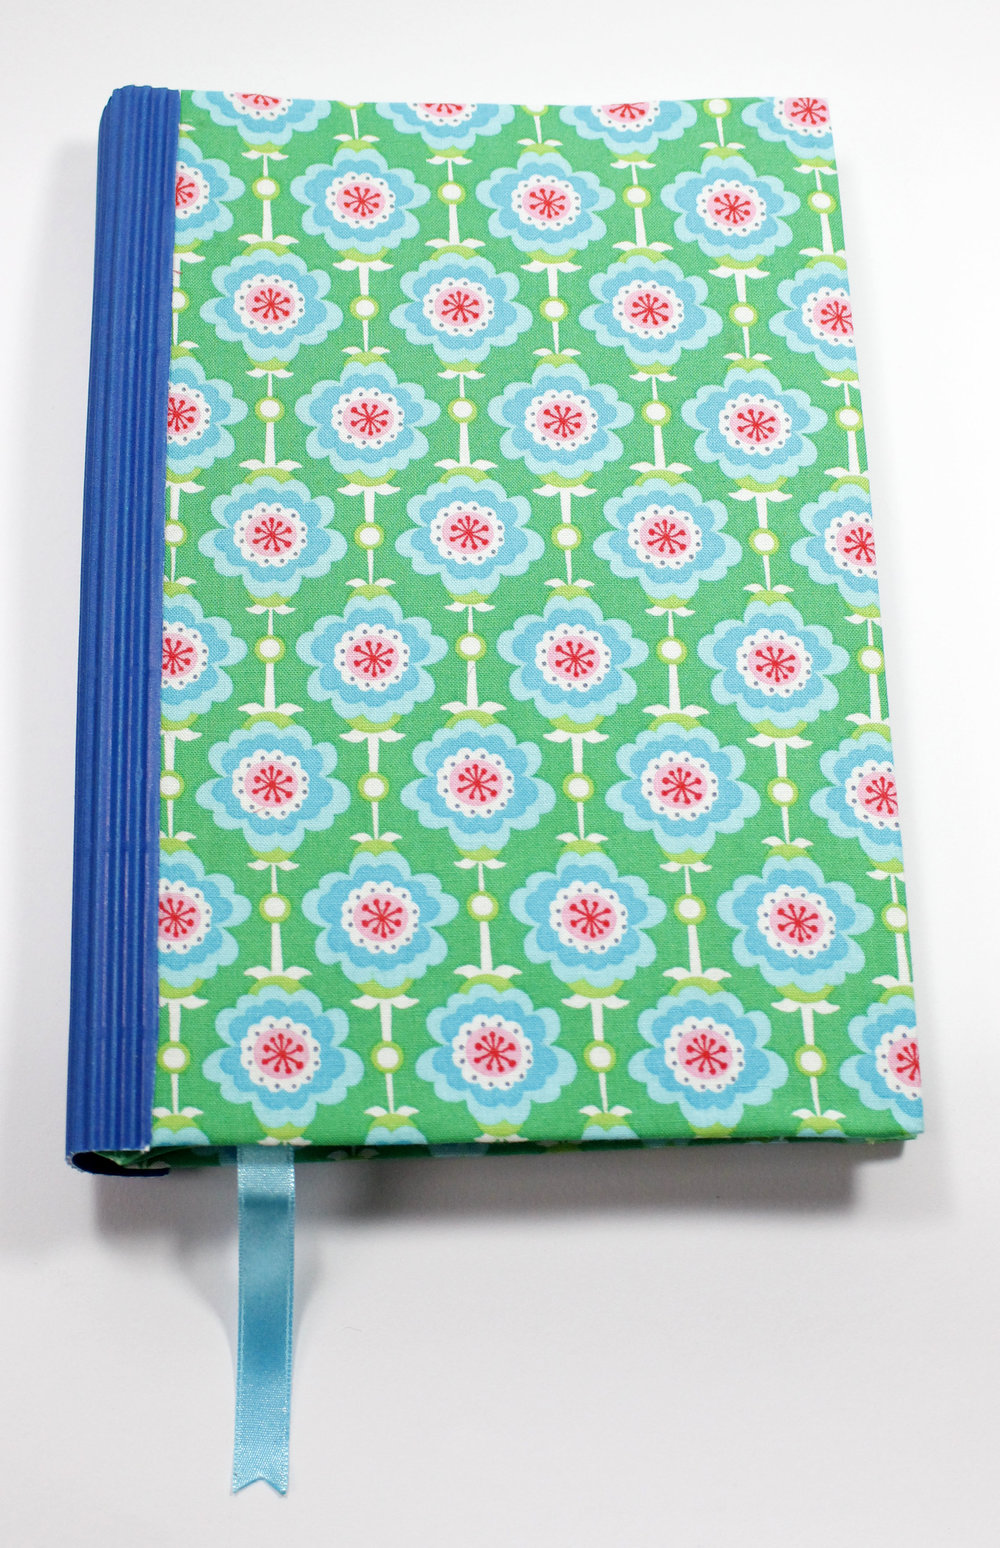 journal-retro-flowers-blue_1.JPG